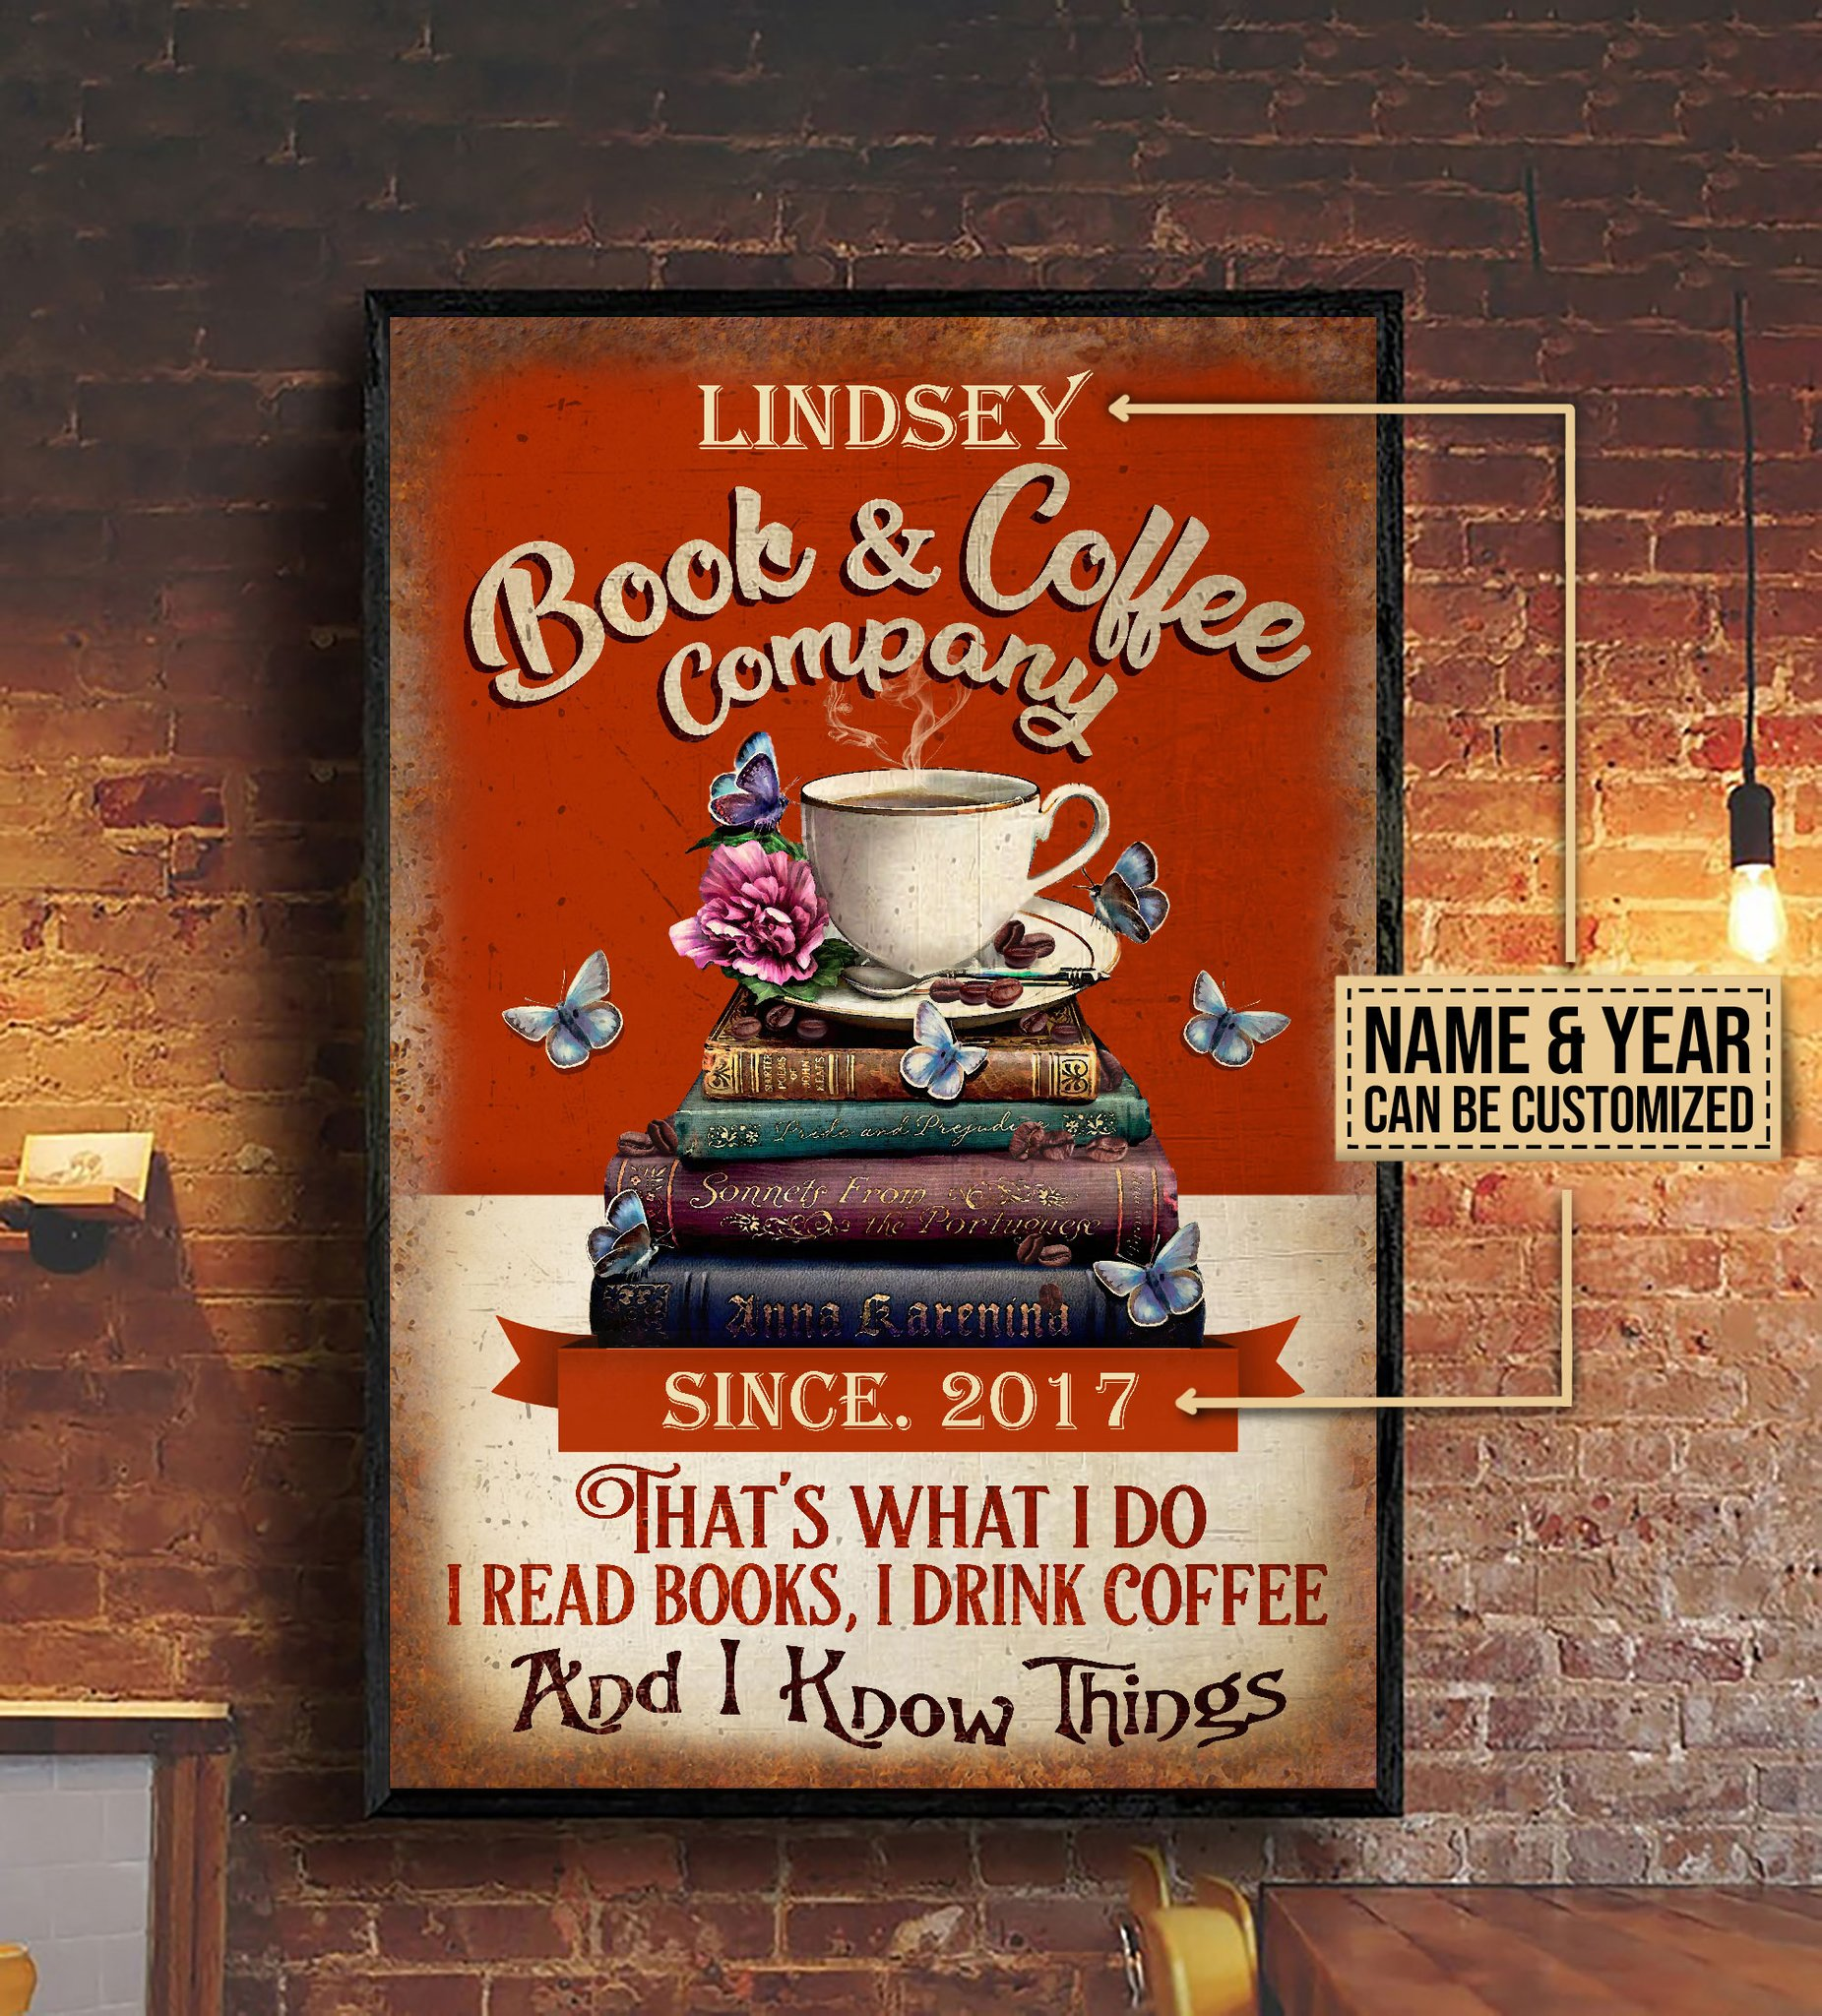 custom your name book and coffee company thats what i do i read books i drink coffee and i know things poster 3